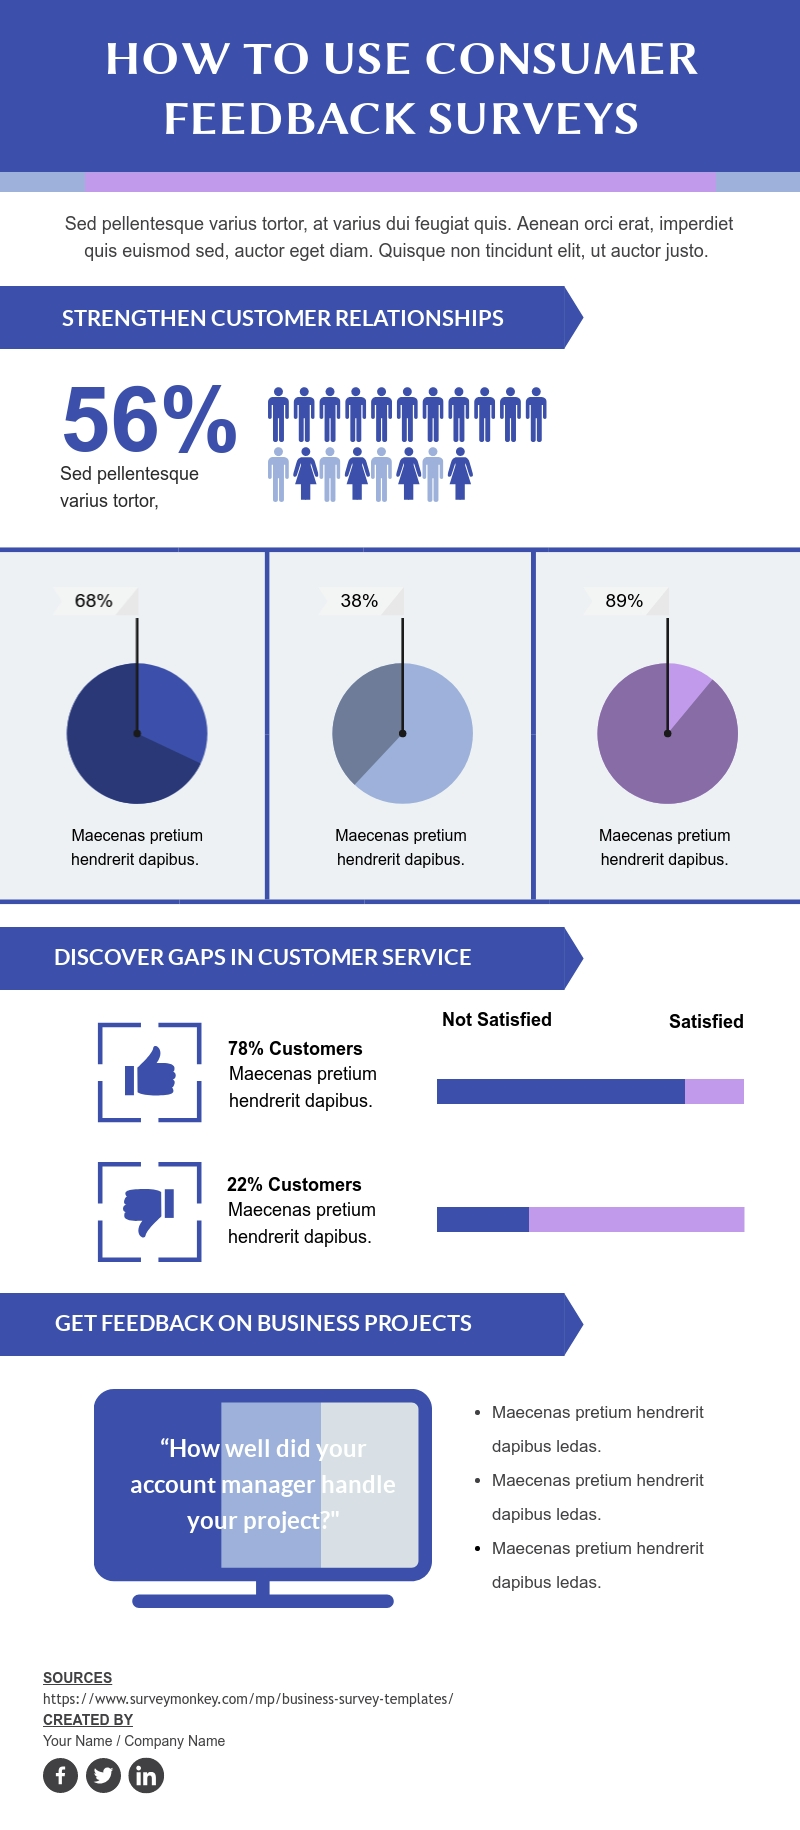 How to Use Consumer Feedback Surveys - Infographic Template